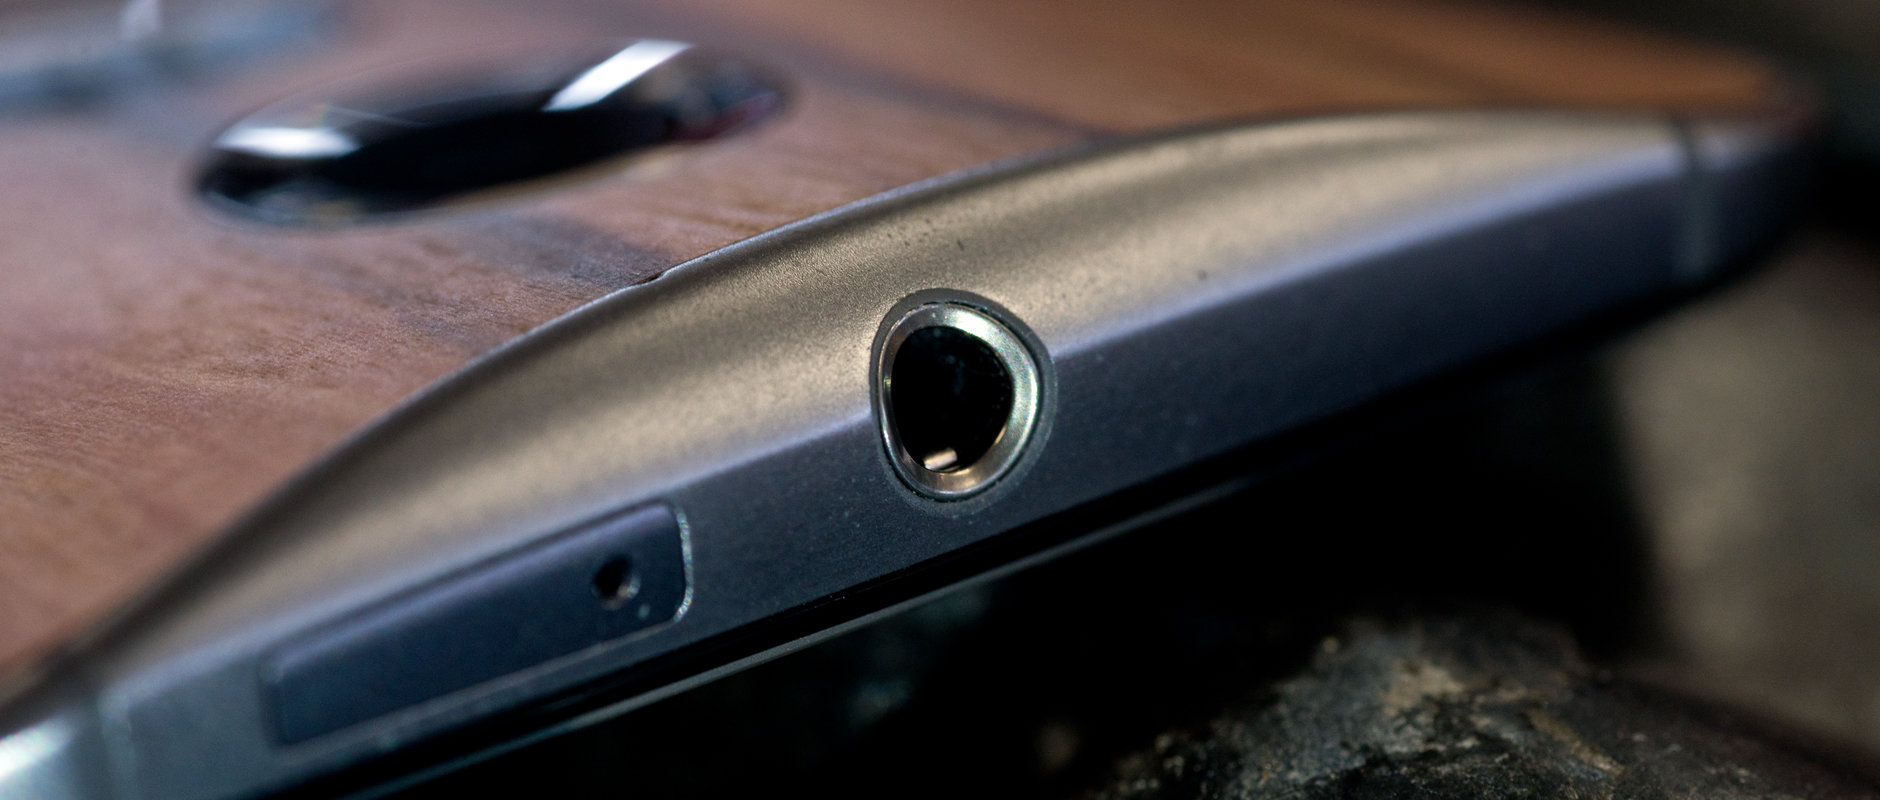 The headphone jack of the Motorola Moto X (2014 edition)